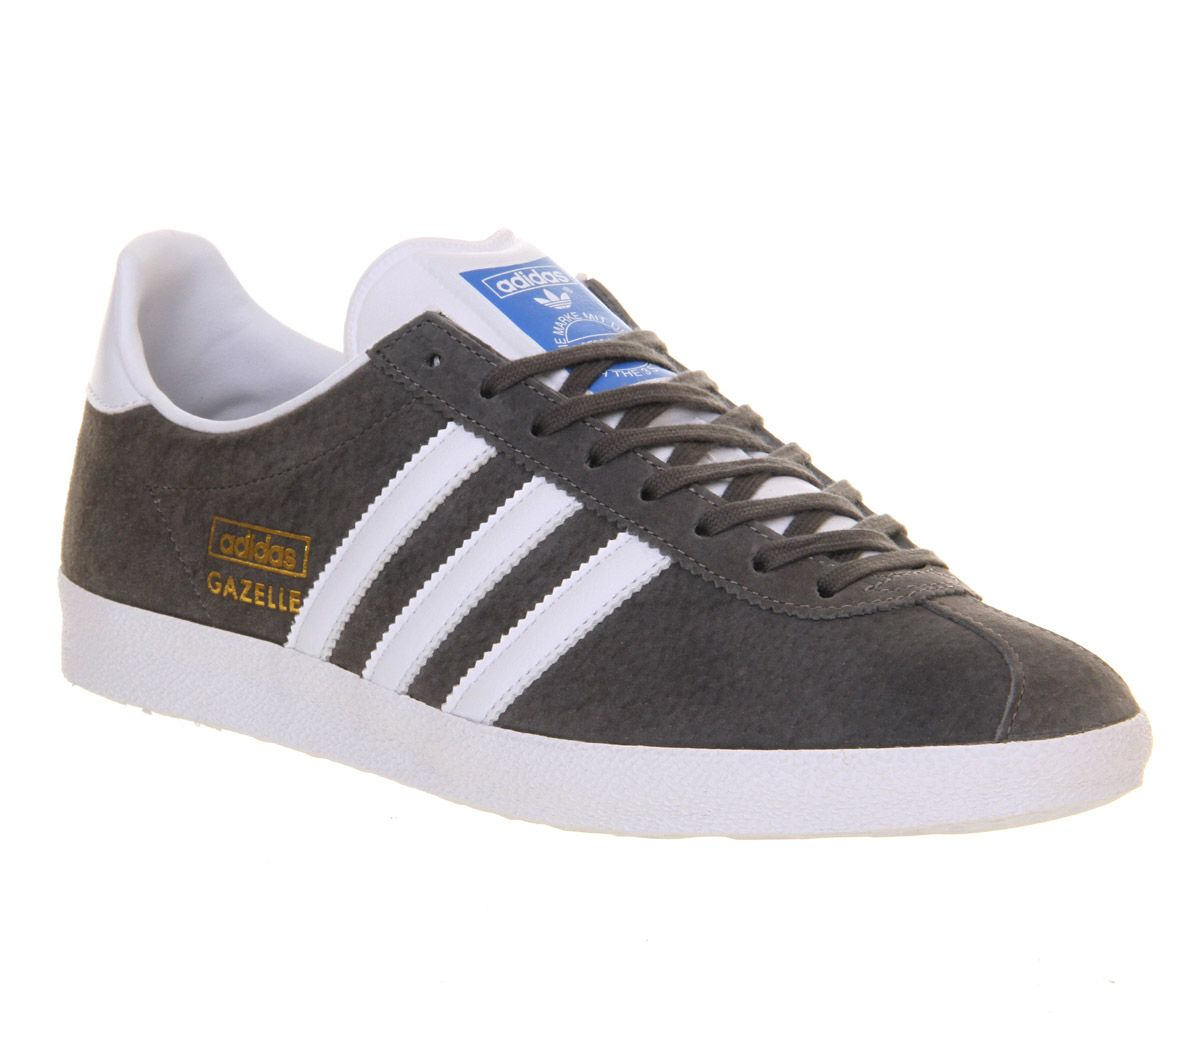 Adidas Gazelle Lace Up Og Sharp Grey White Trainers Shoes